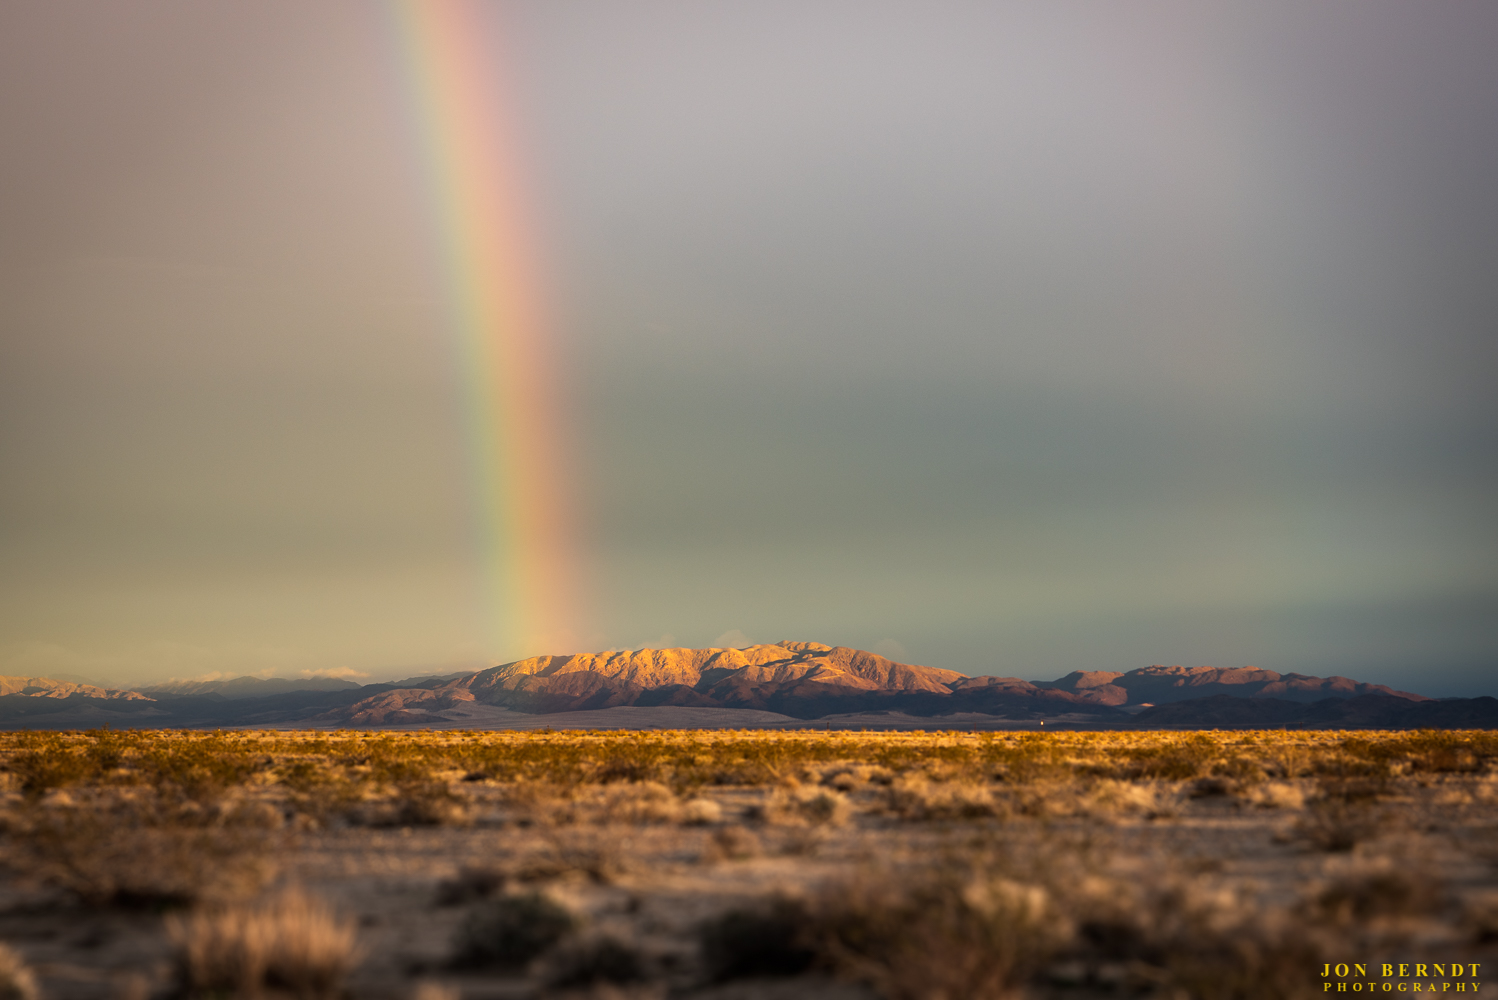 In the evening on the way to   The Palms   restaurant I saw this rainbow. This was taken on the evening of February 18th, 2017 - the same day that began with the photograph at the top of this page with clouds hugging the mountains to the south of Wonder Valley. This rainbow is also seen looking south from near The Palms.